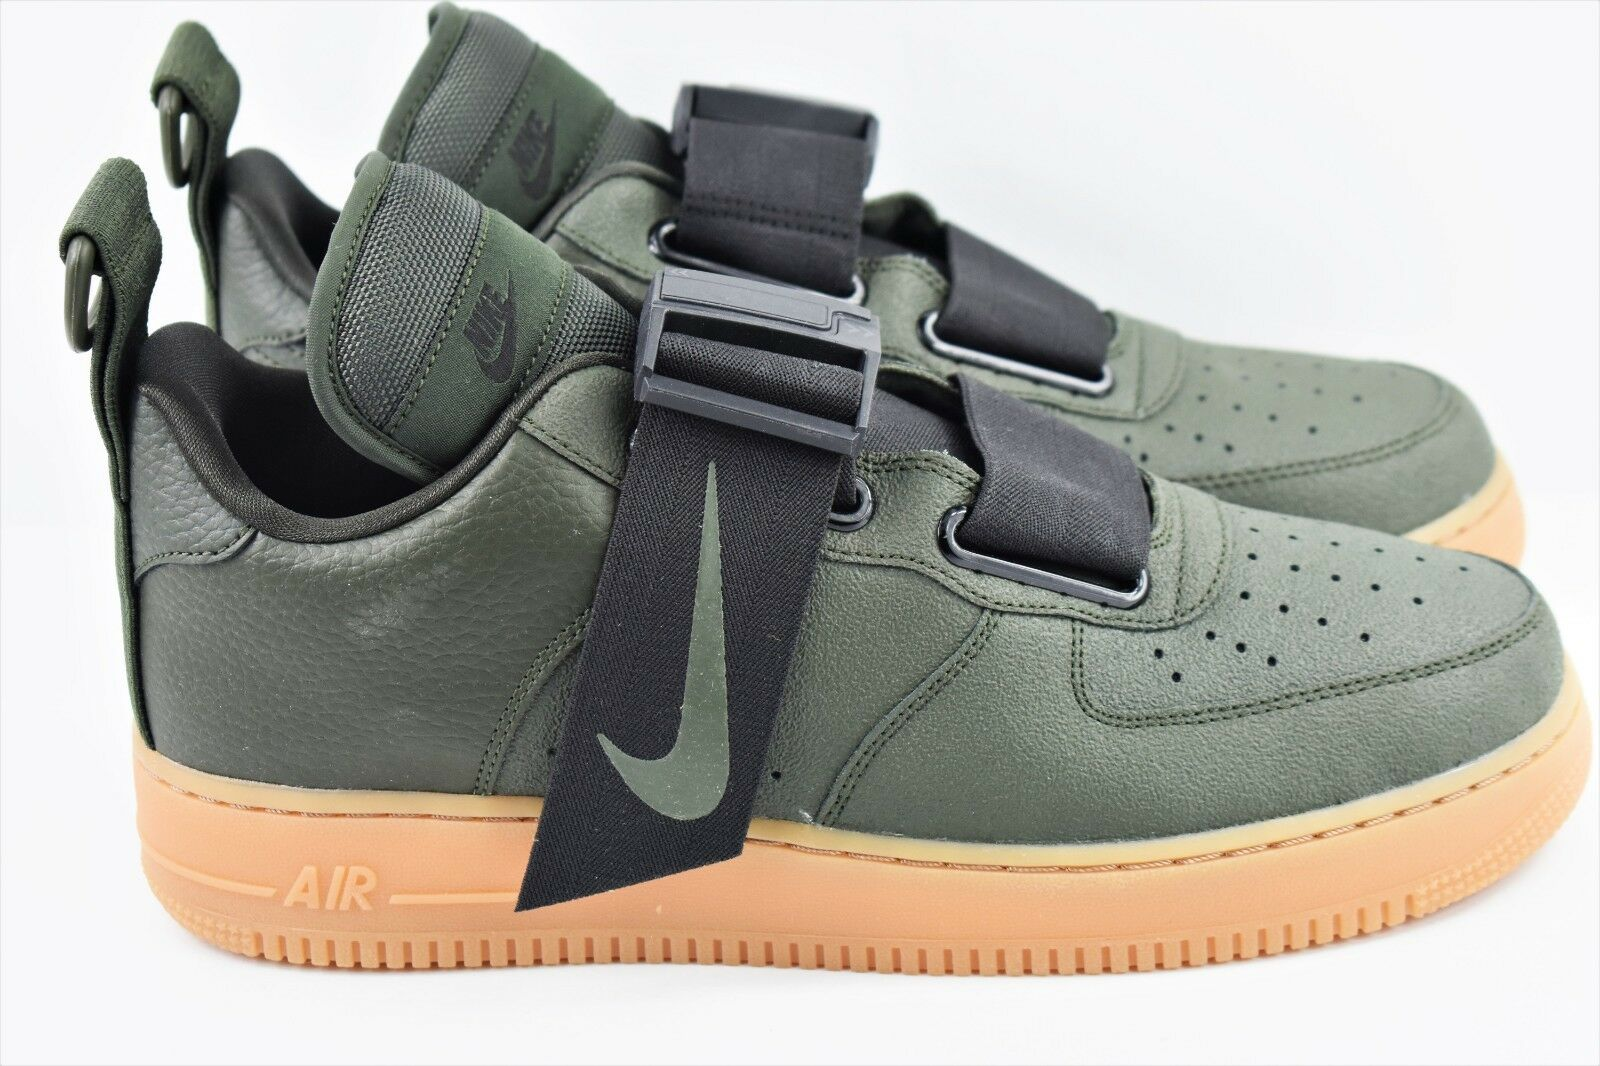 Nike Air Force 1 Utility Mens Size 9 shoes Khaki Green Gum AO1531 300 AF1